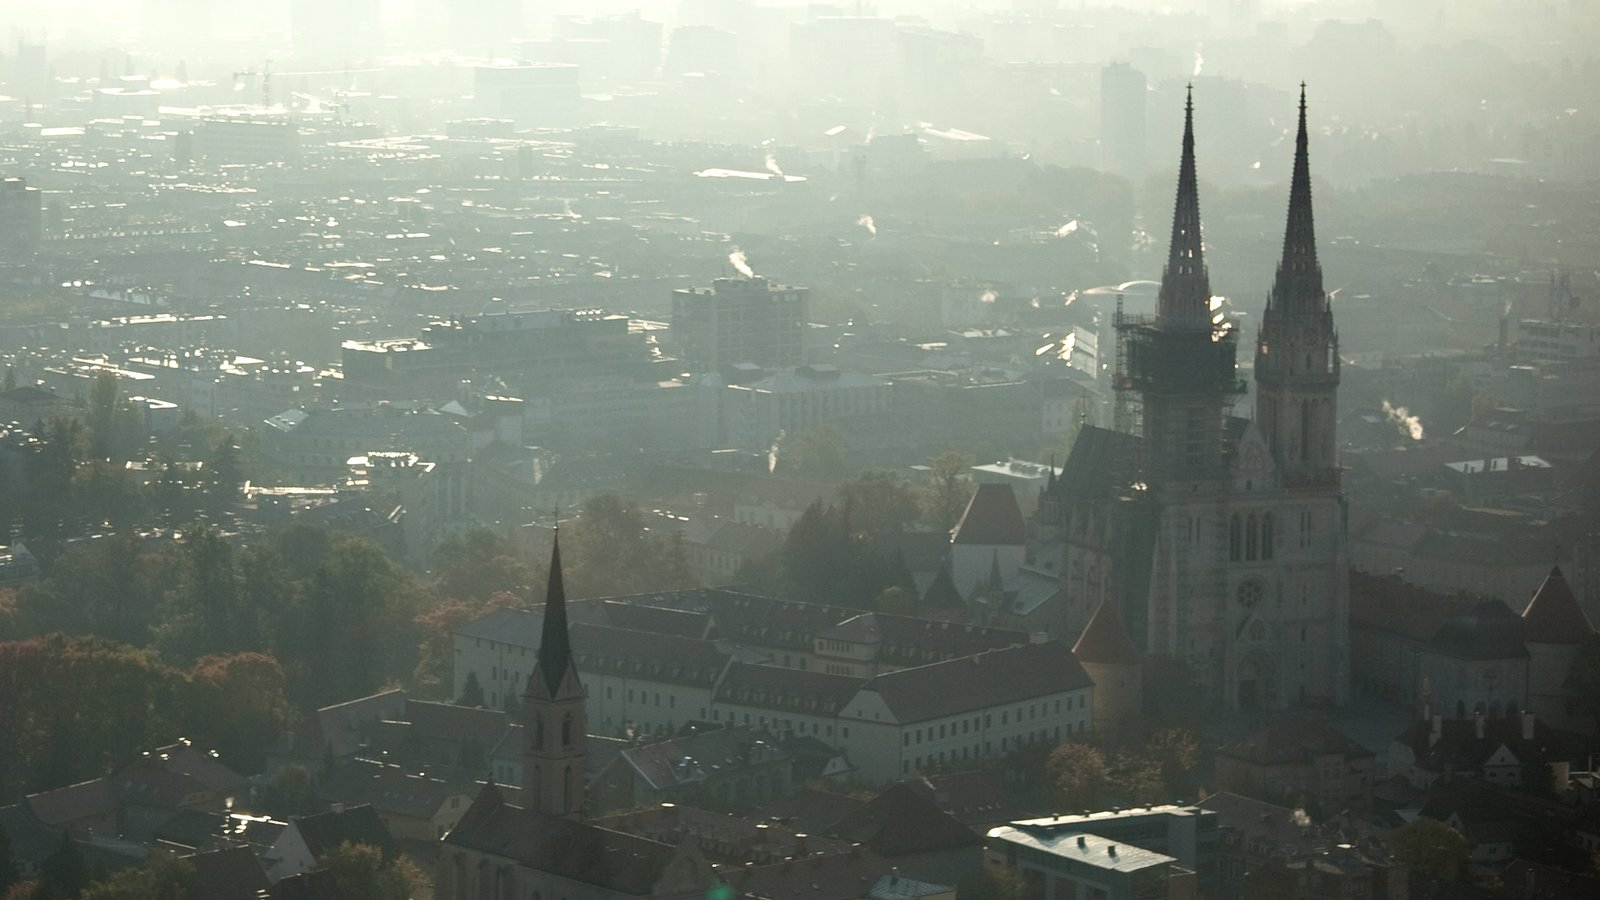 Zagreb County showing a city, mist or fog and heritage architecture